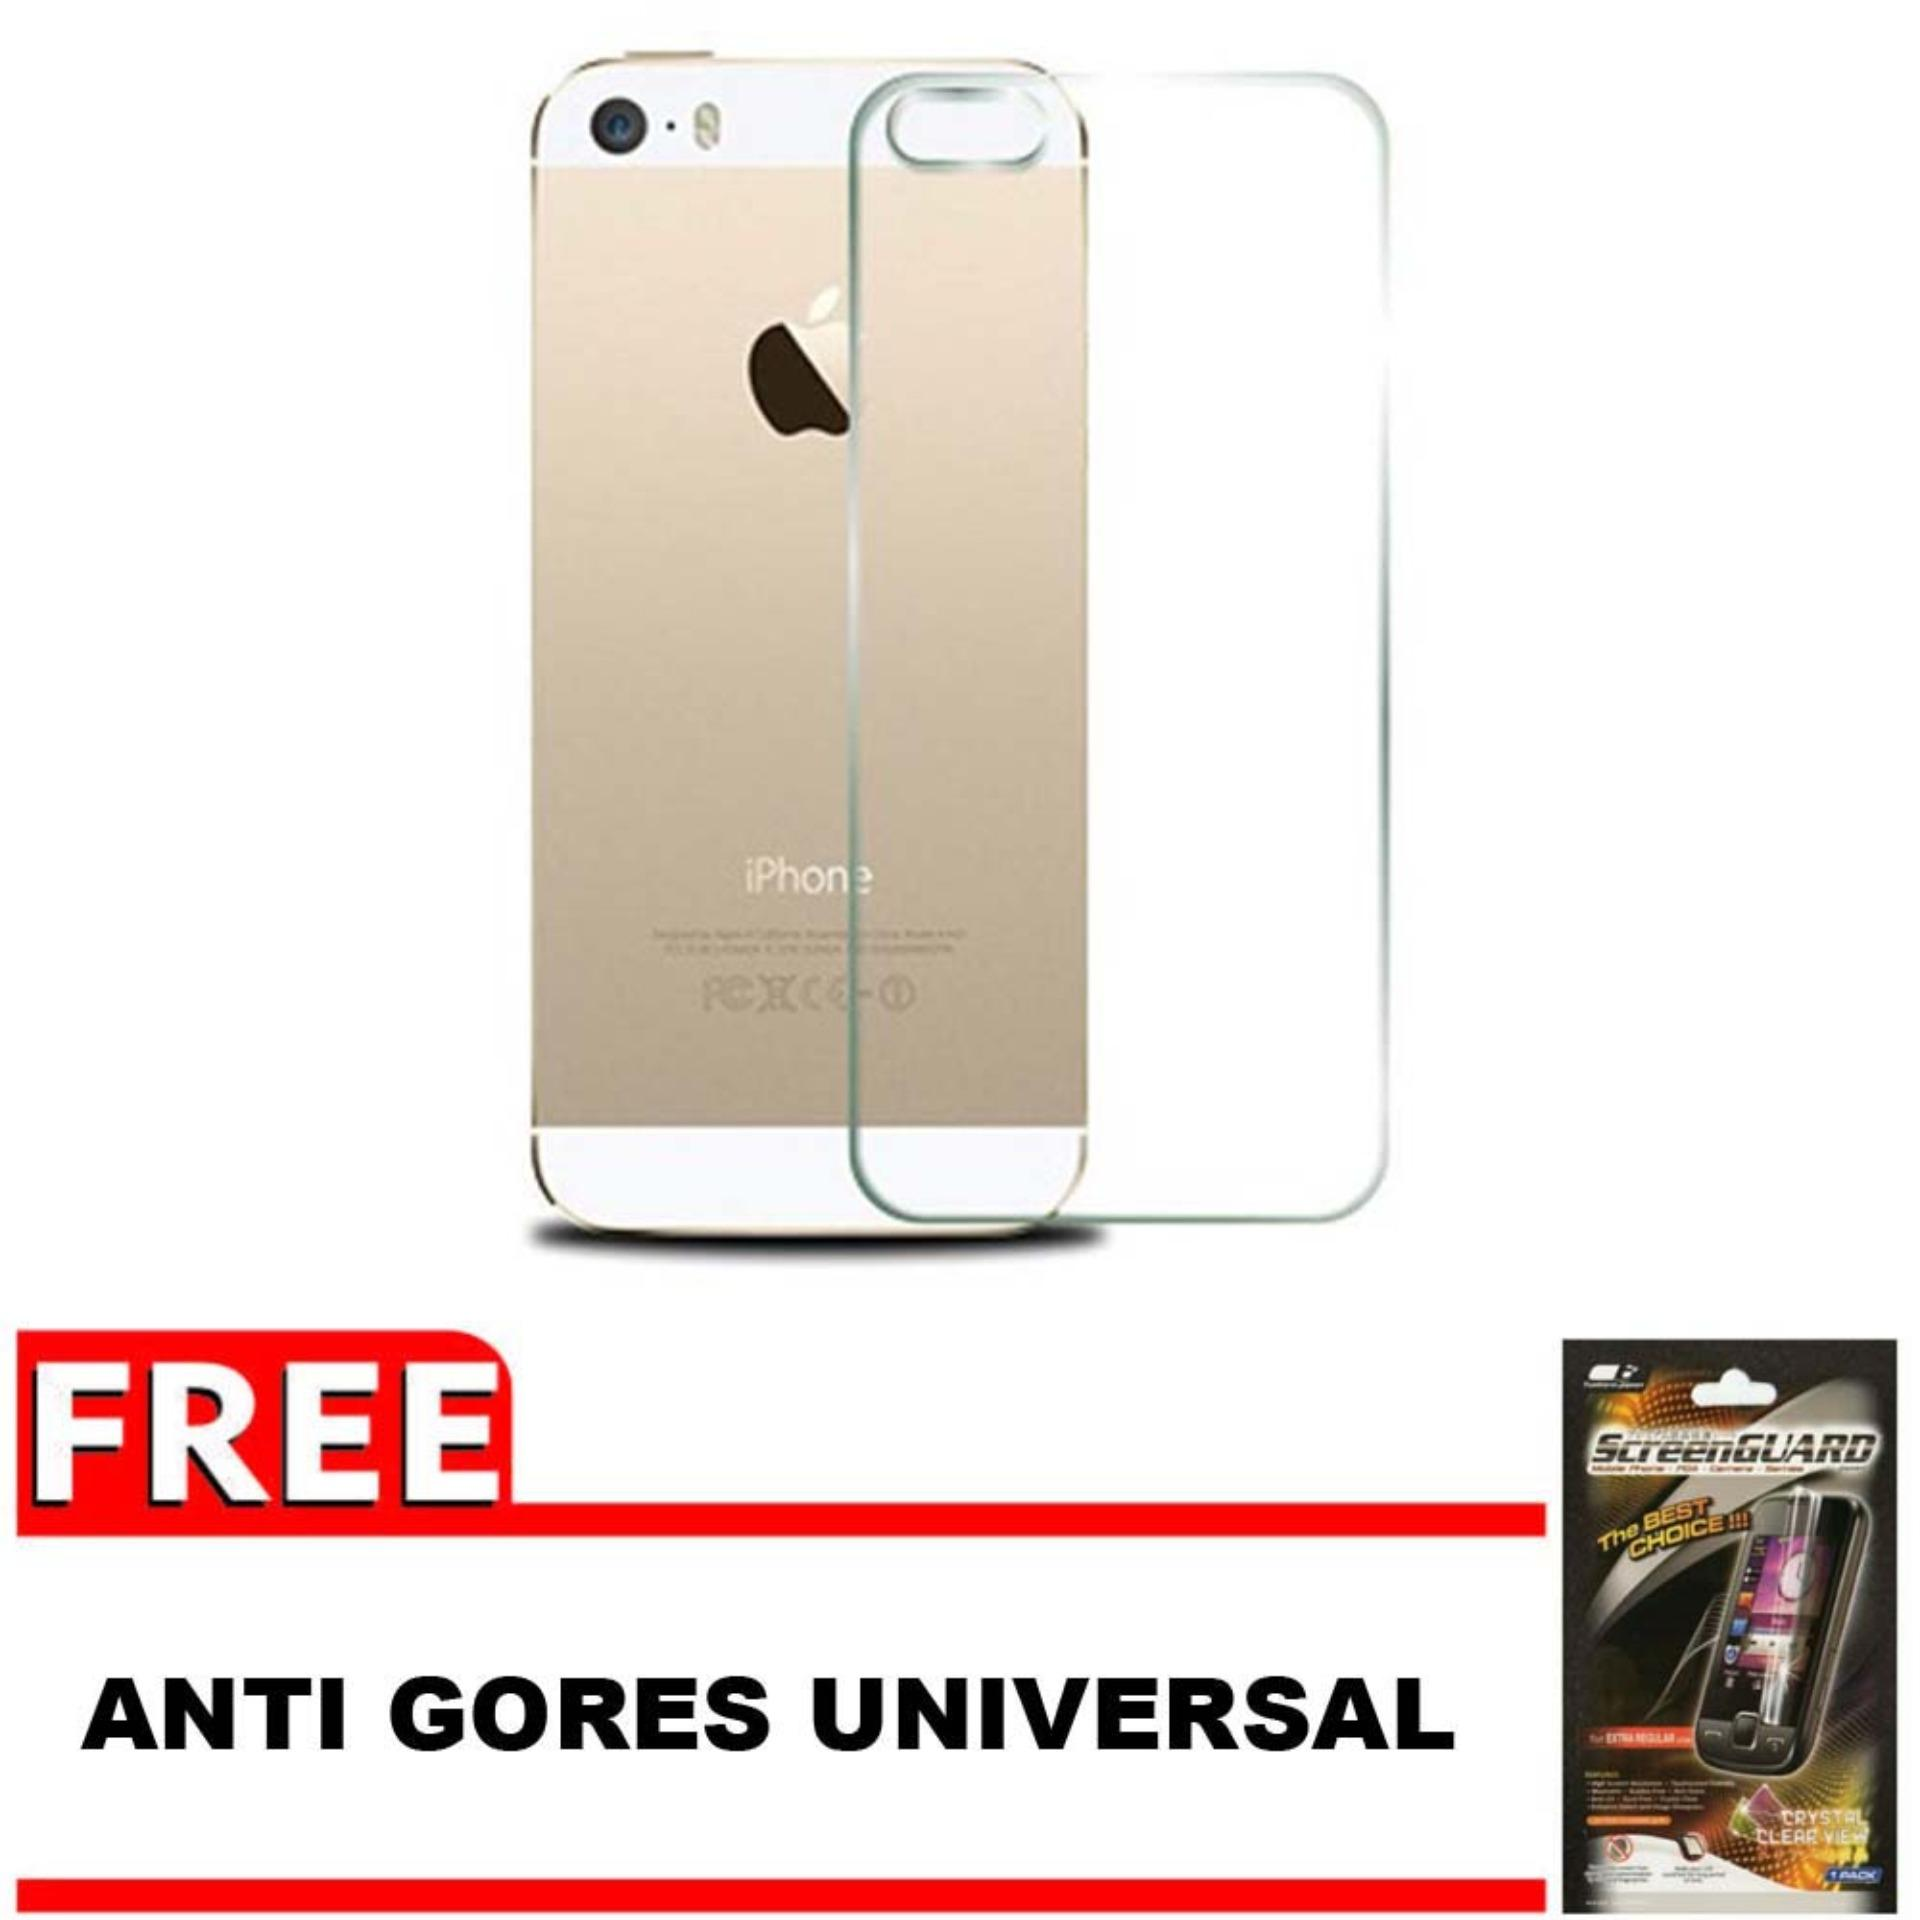 Vn Apple iPhone 5 / 5S / 5G / SE Tempered Glass 9H Screen Protector 0.32